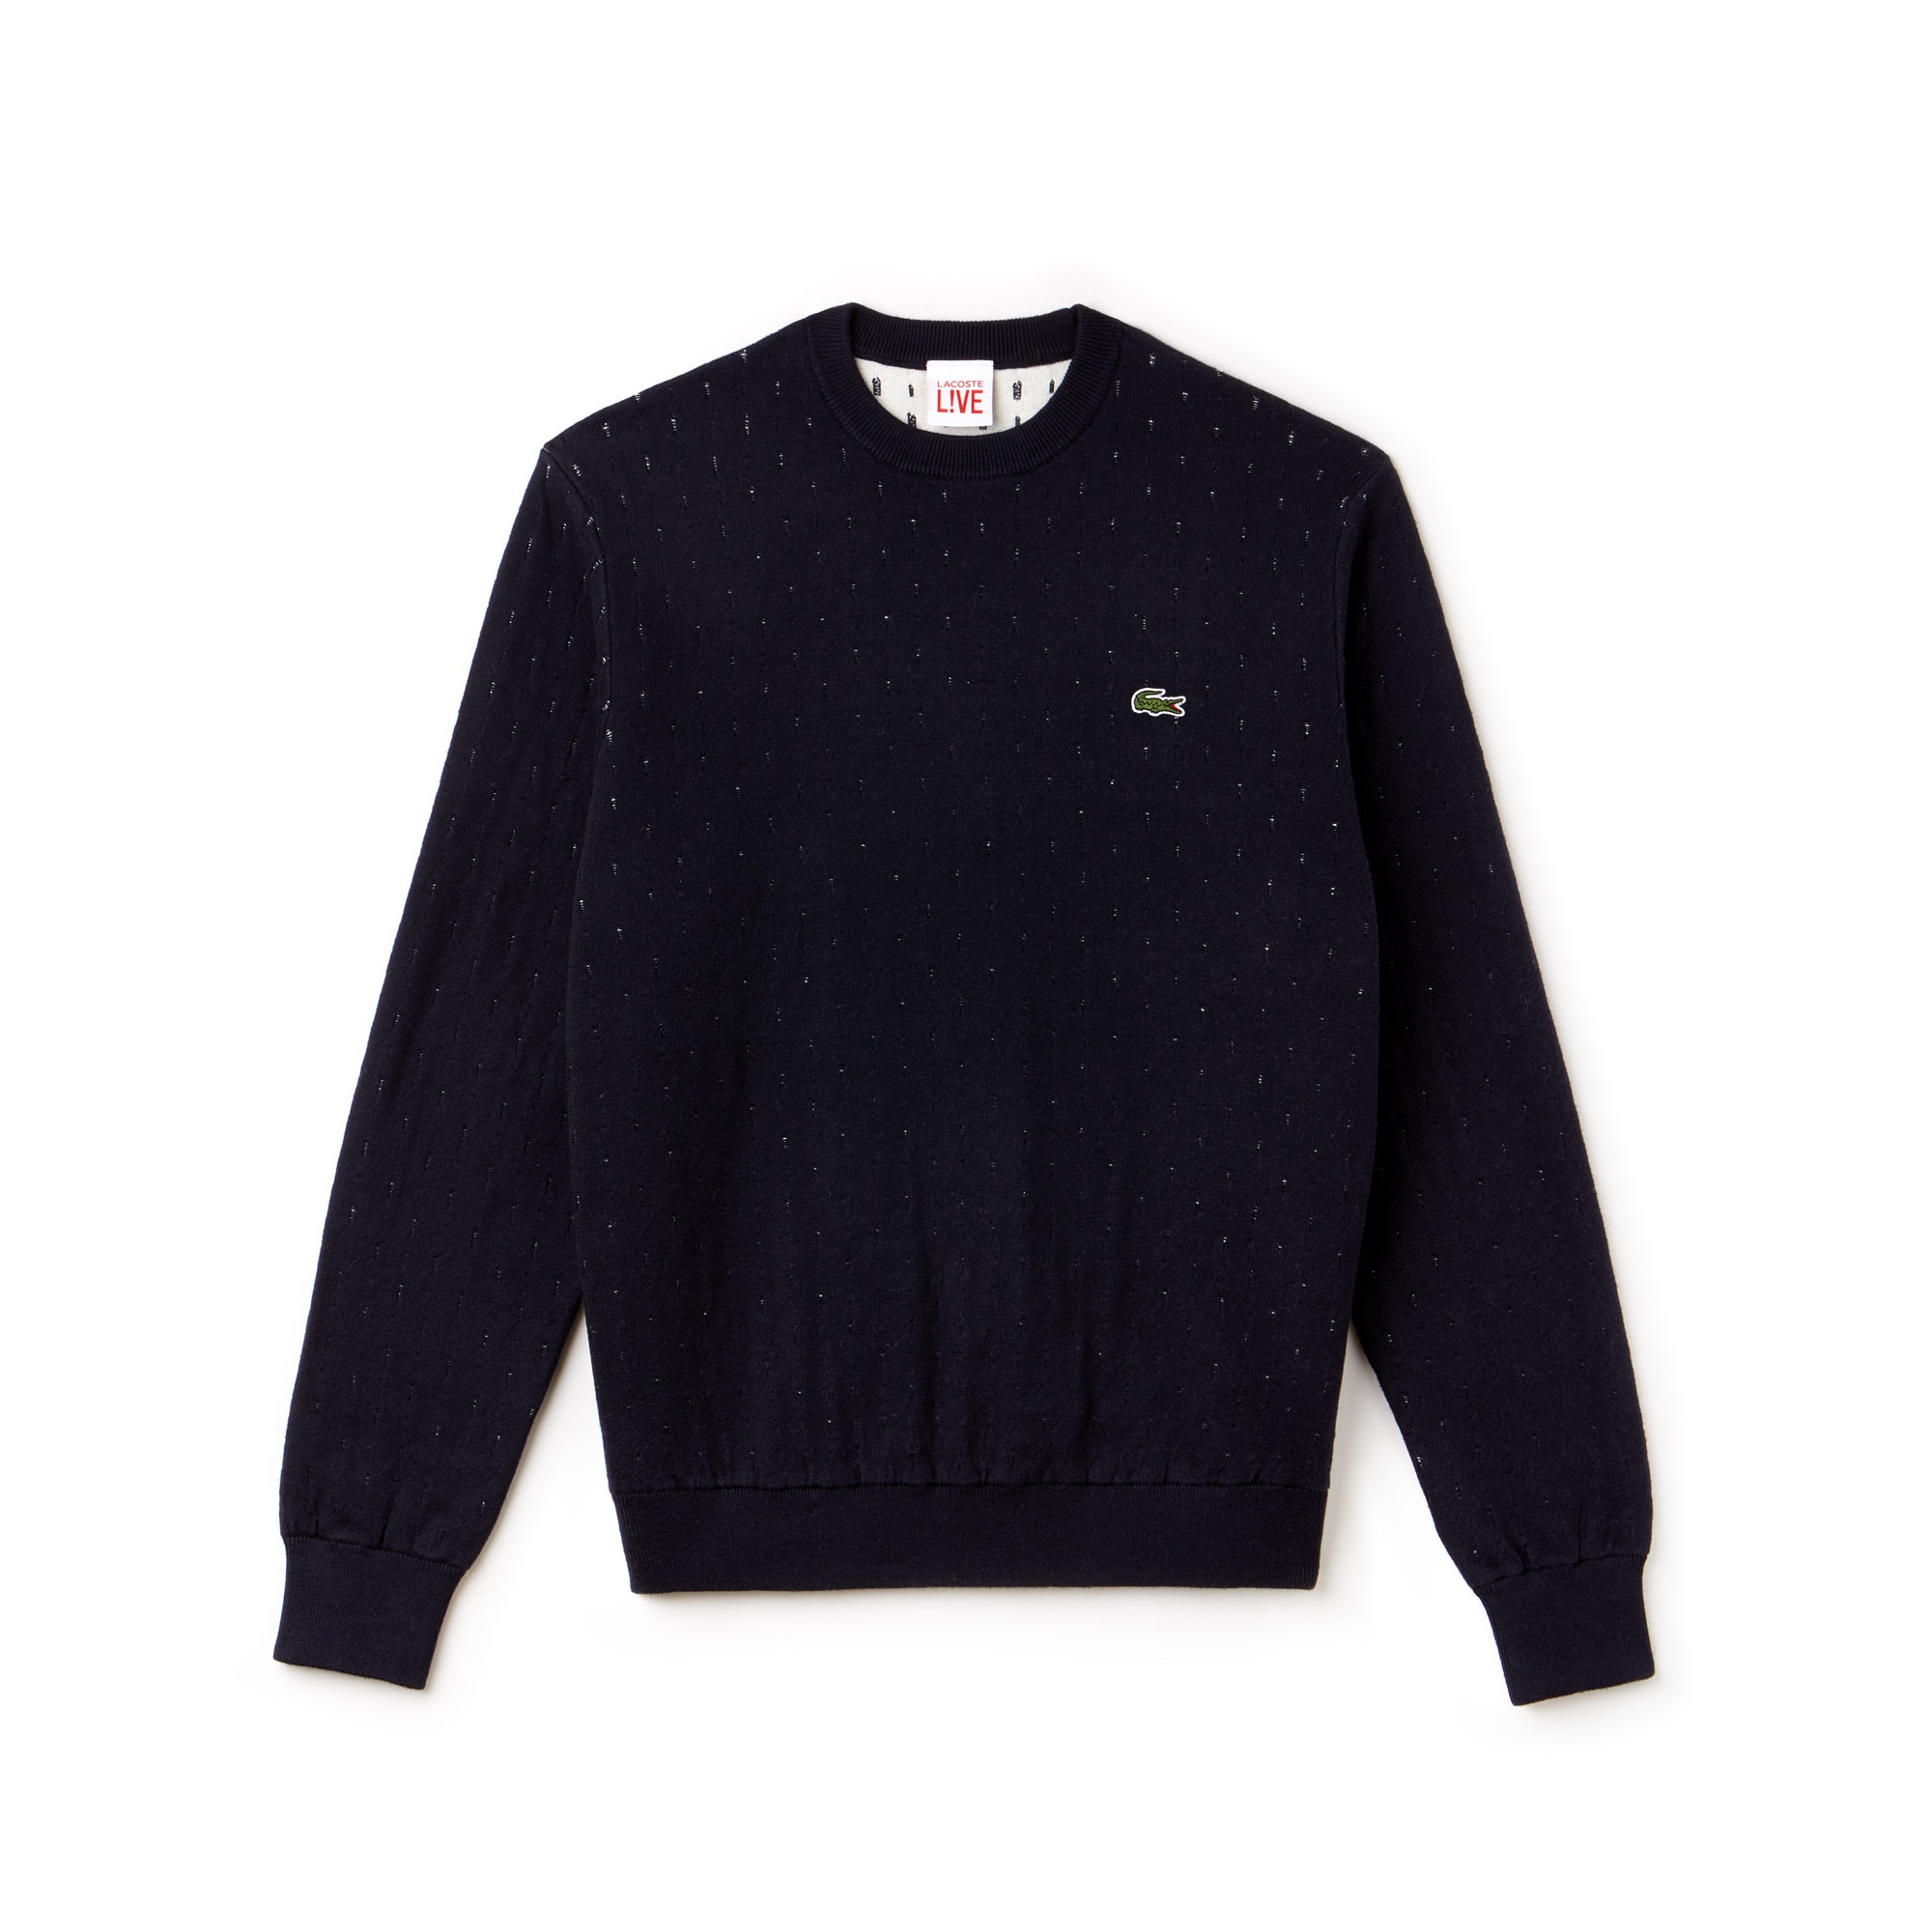 Men's Lacoste LIVE Crew Neck Cotton And Cashmere Jacquard Sweater